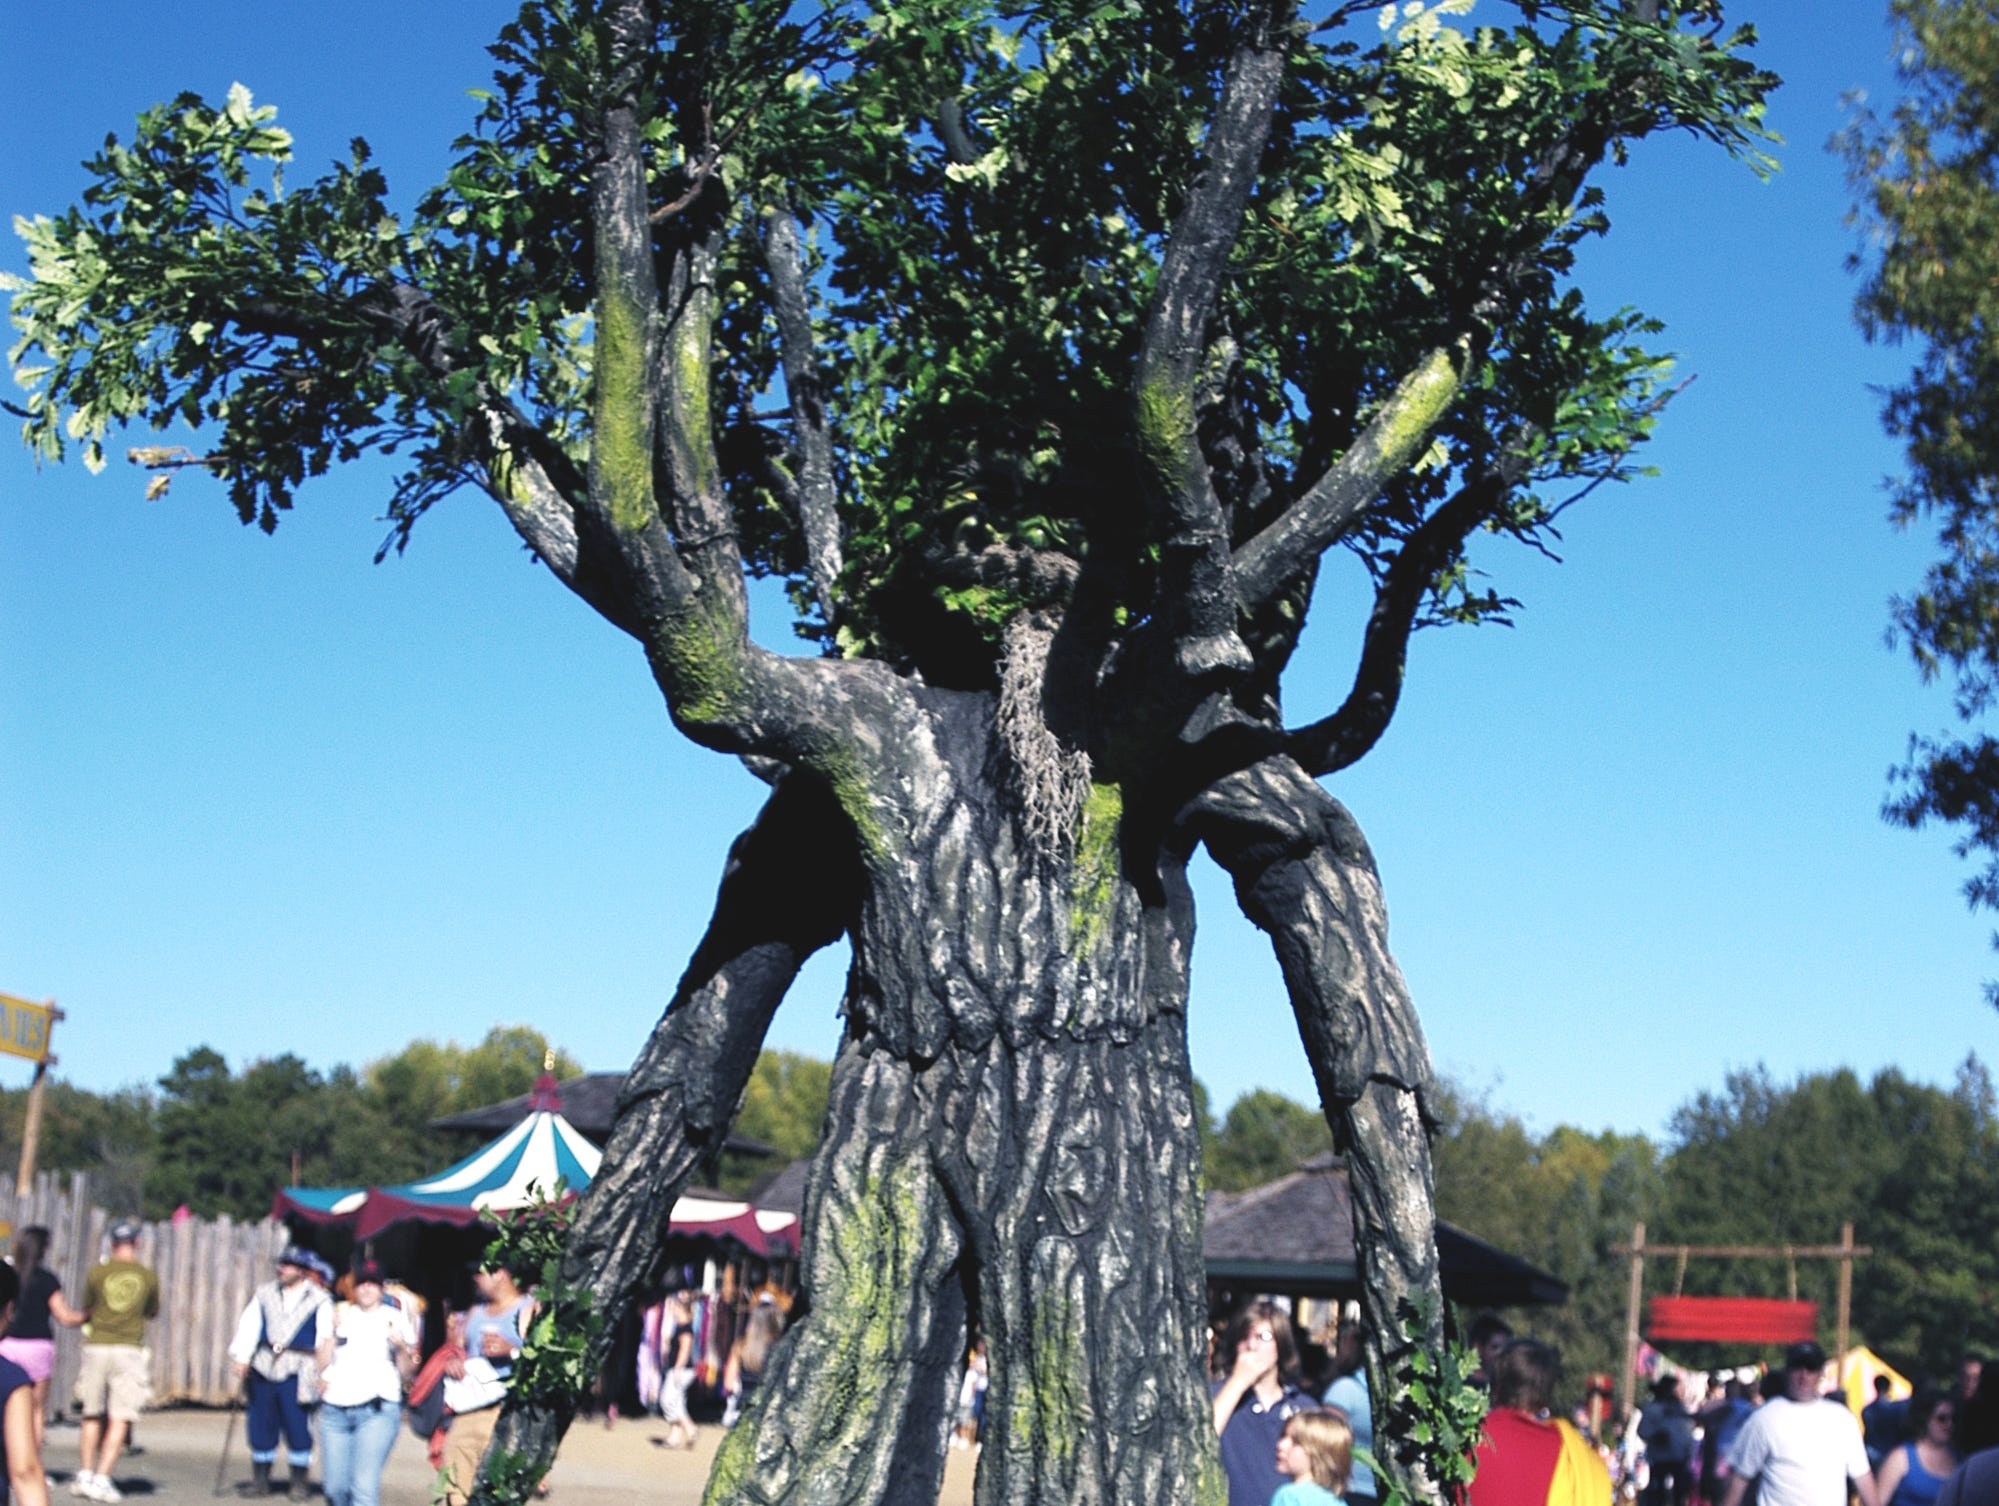 The Green Man entertains the crowds at the Arizona Renaissance Festival in 2011